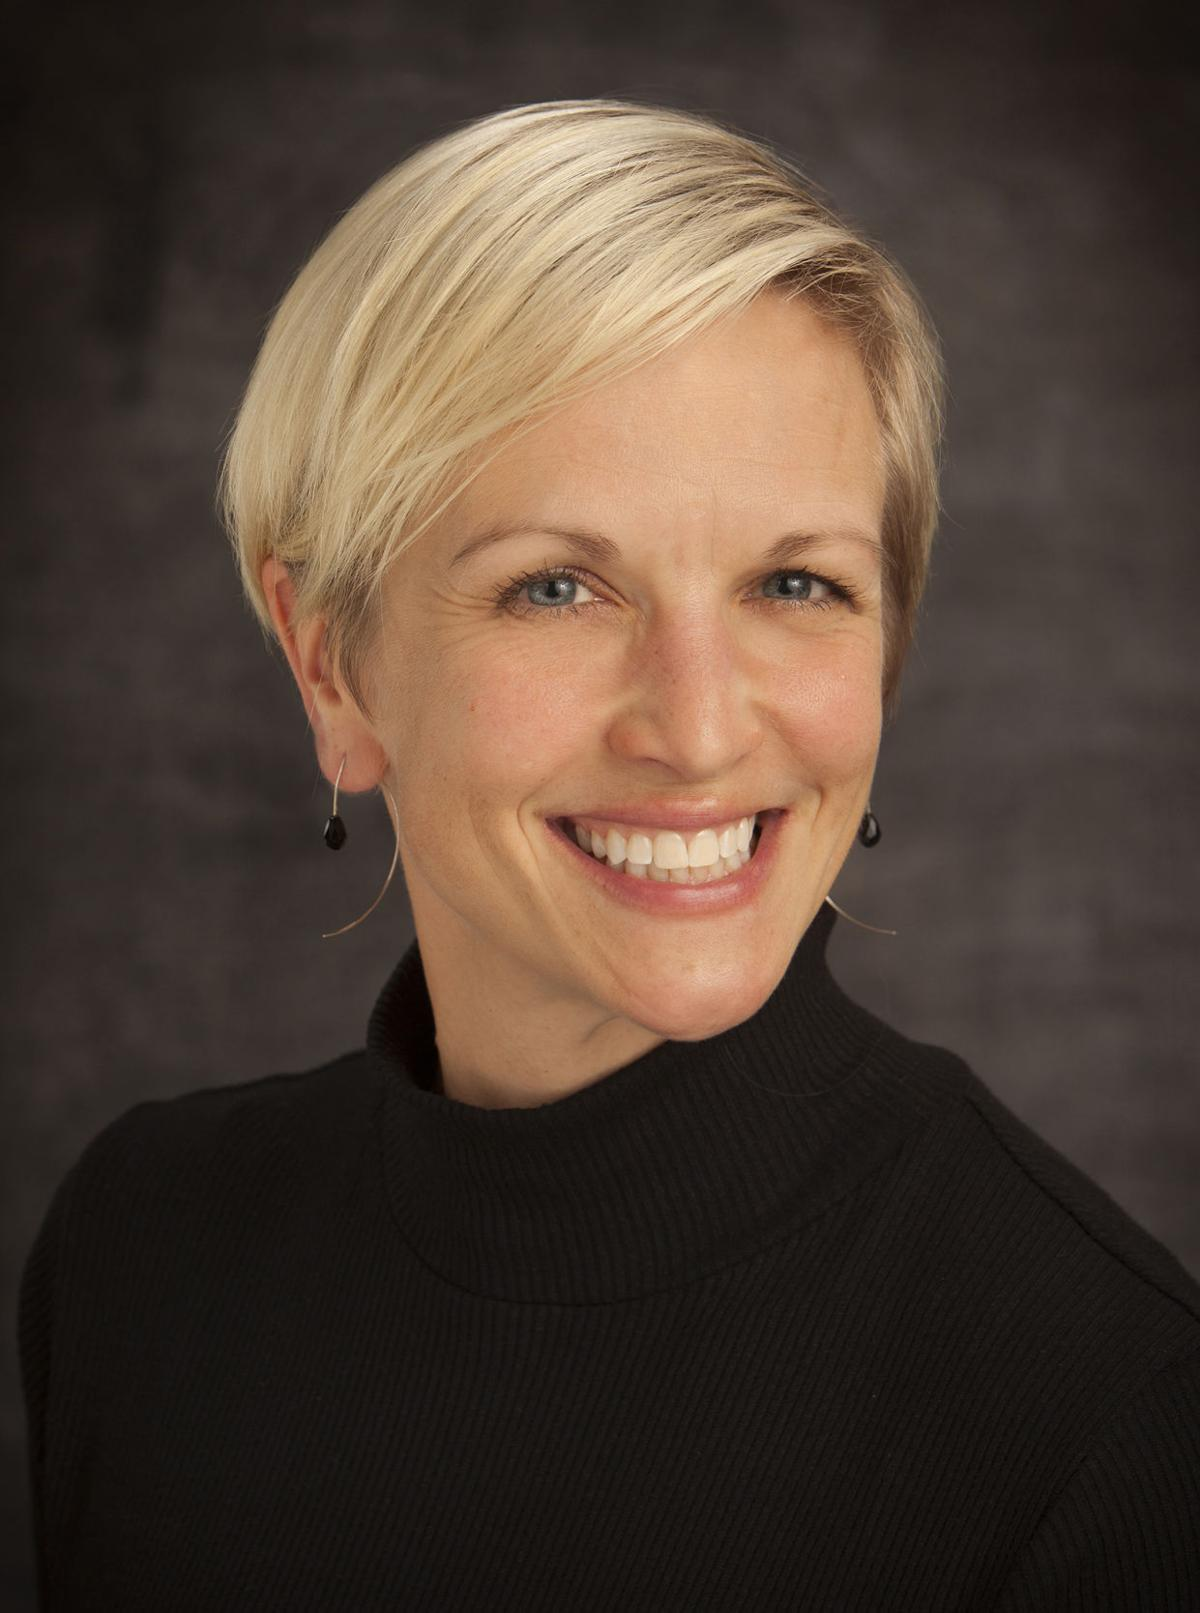 Dr. Michelle R. Young